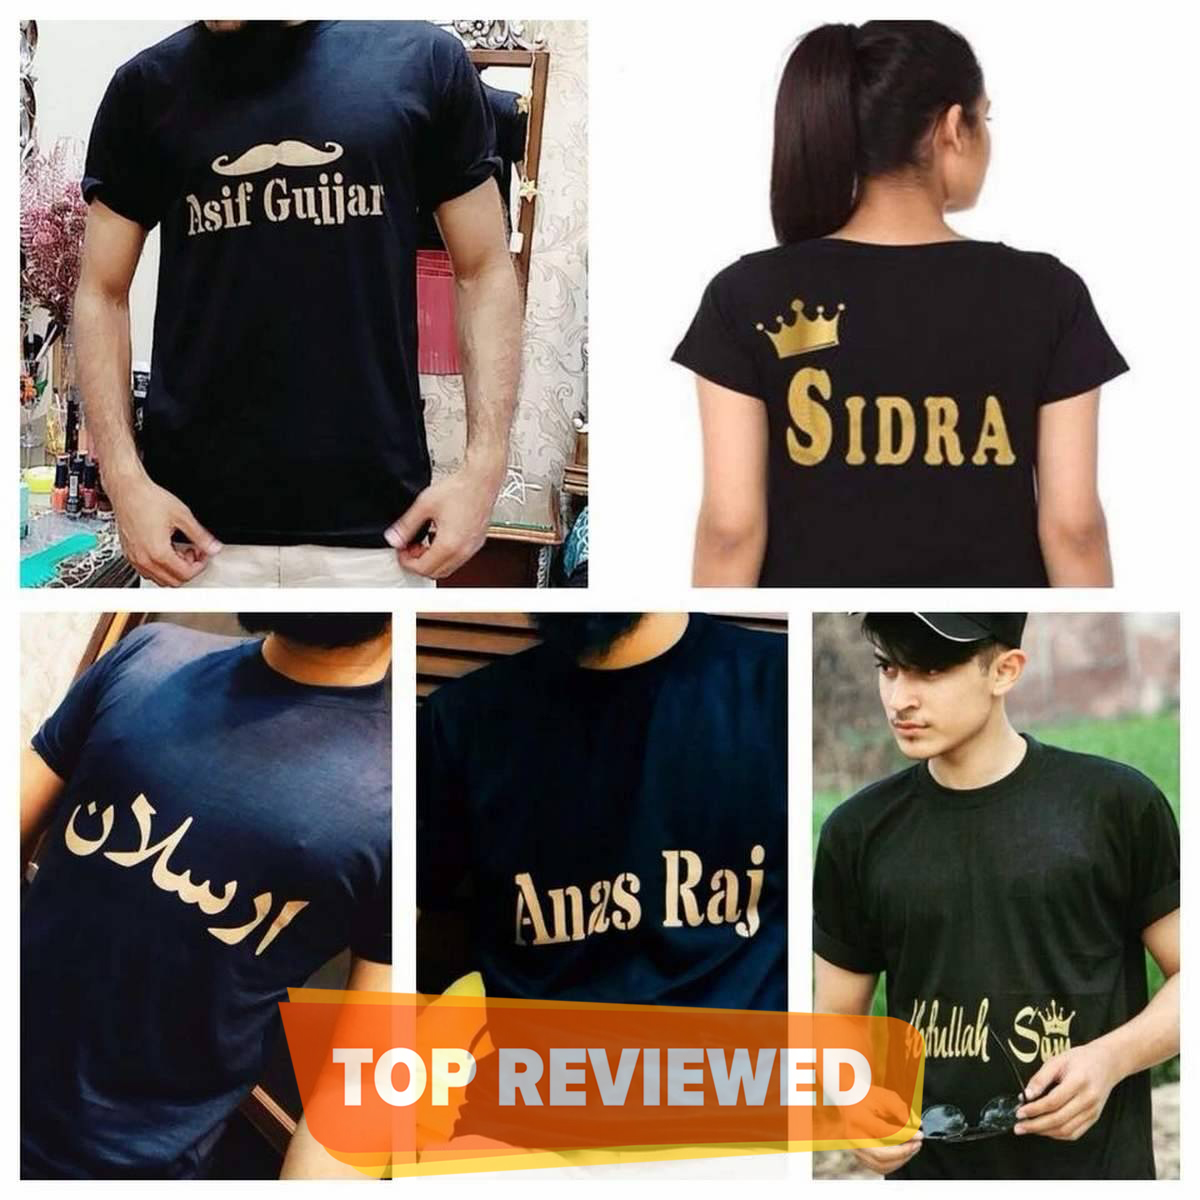 Customized printed T Shirts For Boys And Girls personalized your name in English or urdu on T Shirts